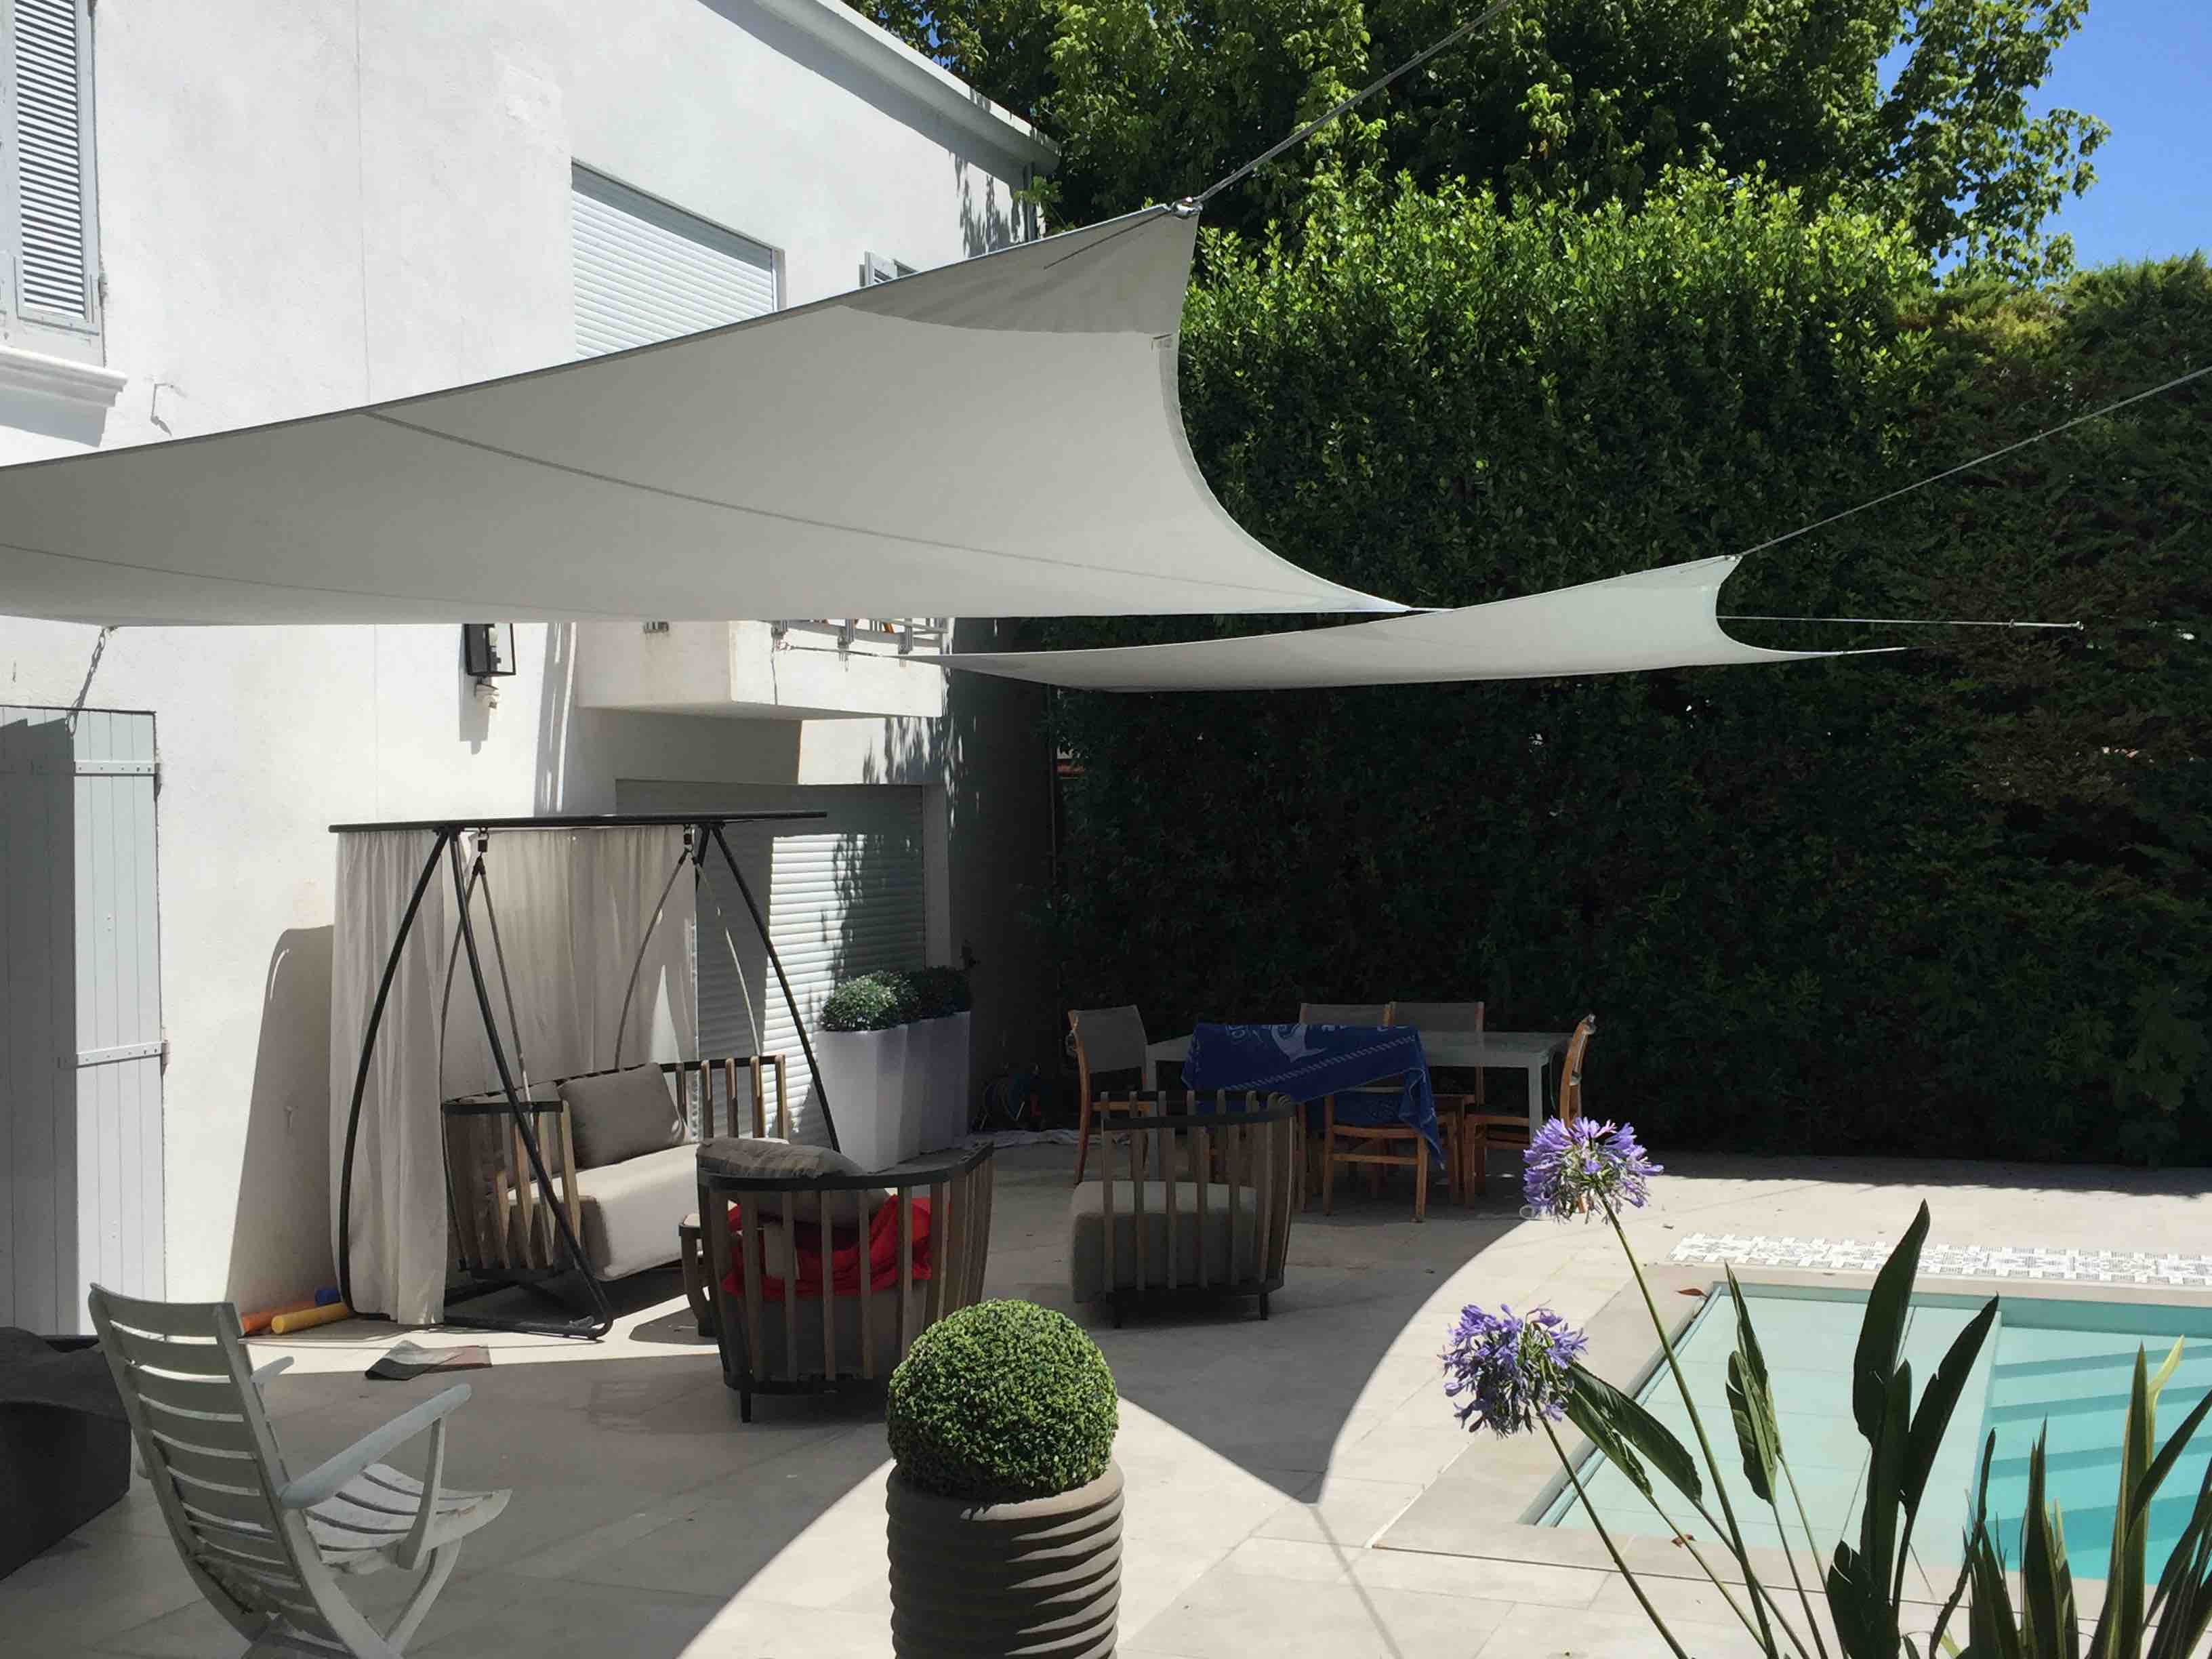 Comment Ombrager Une Terrasse Emejing Ombrager Une Terrasse Gallery House Design Marcomilone